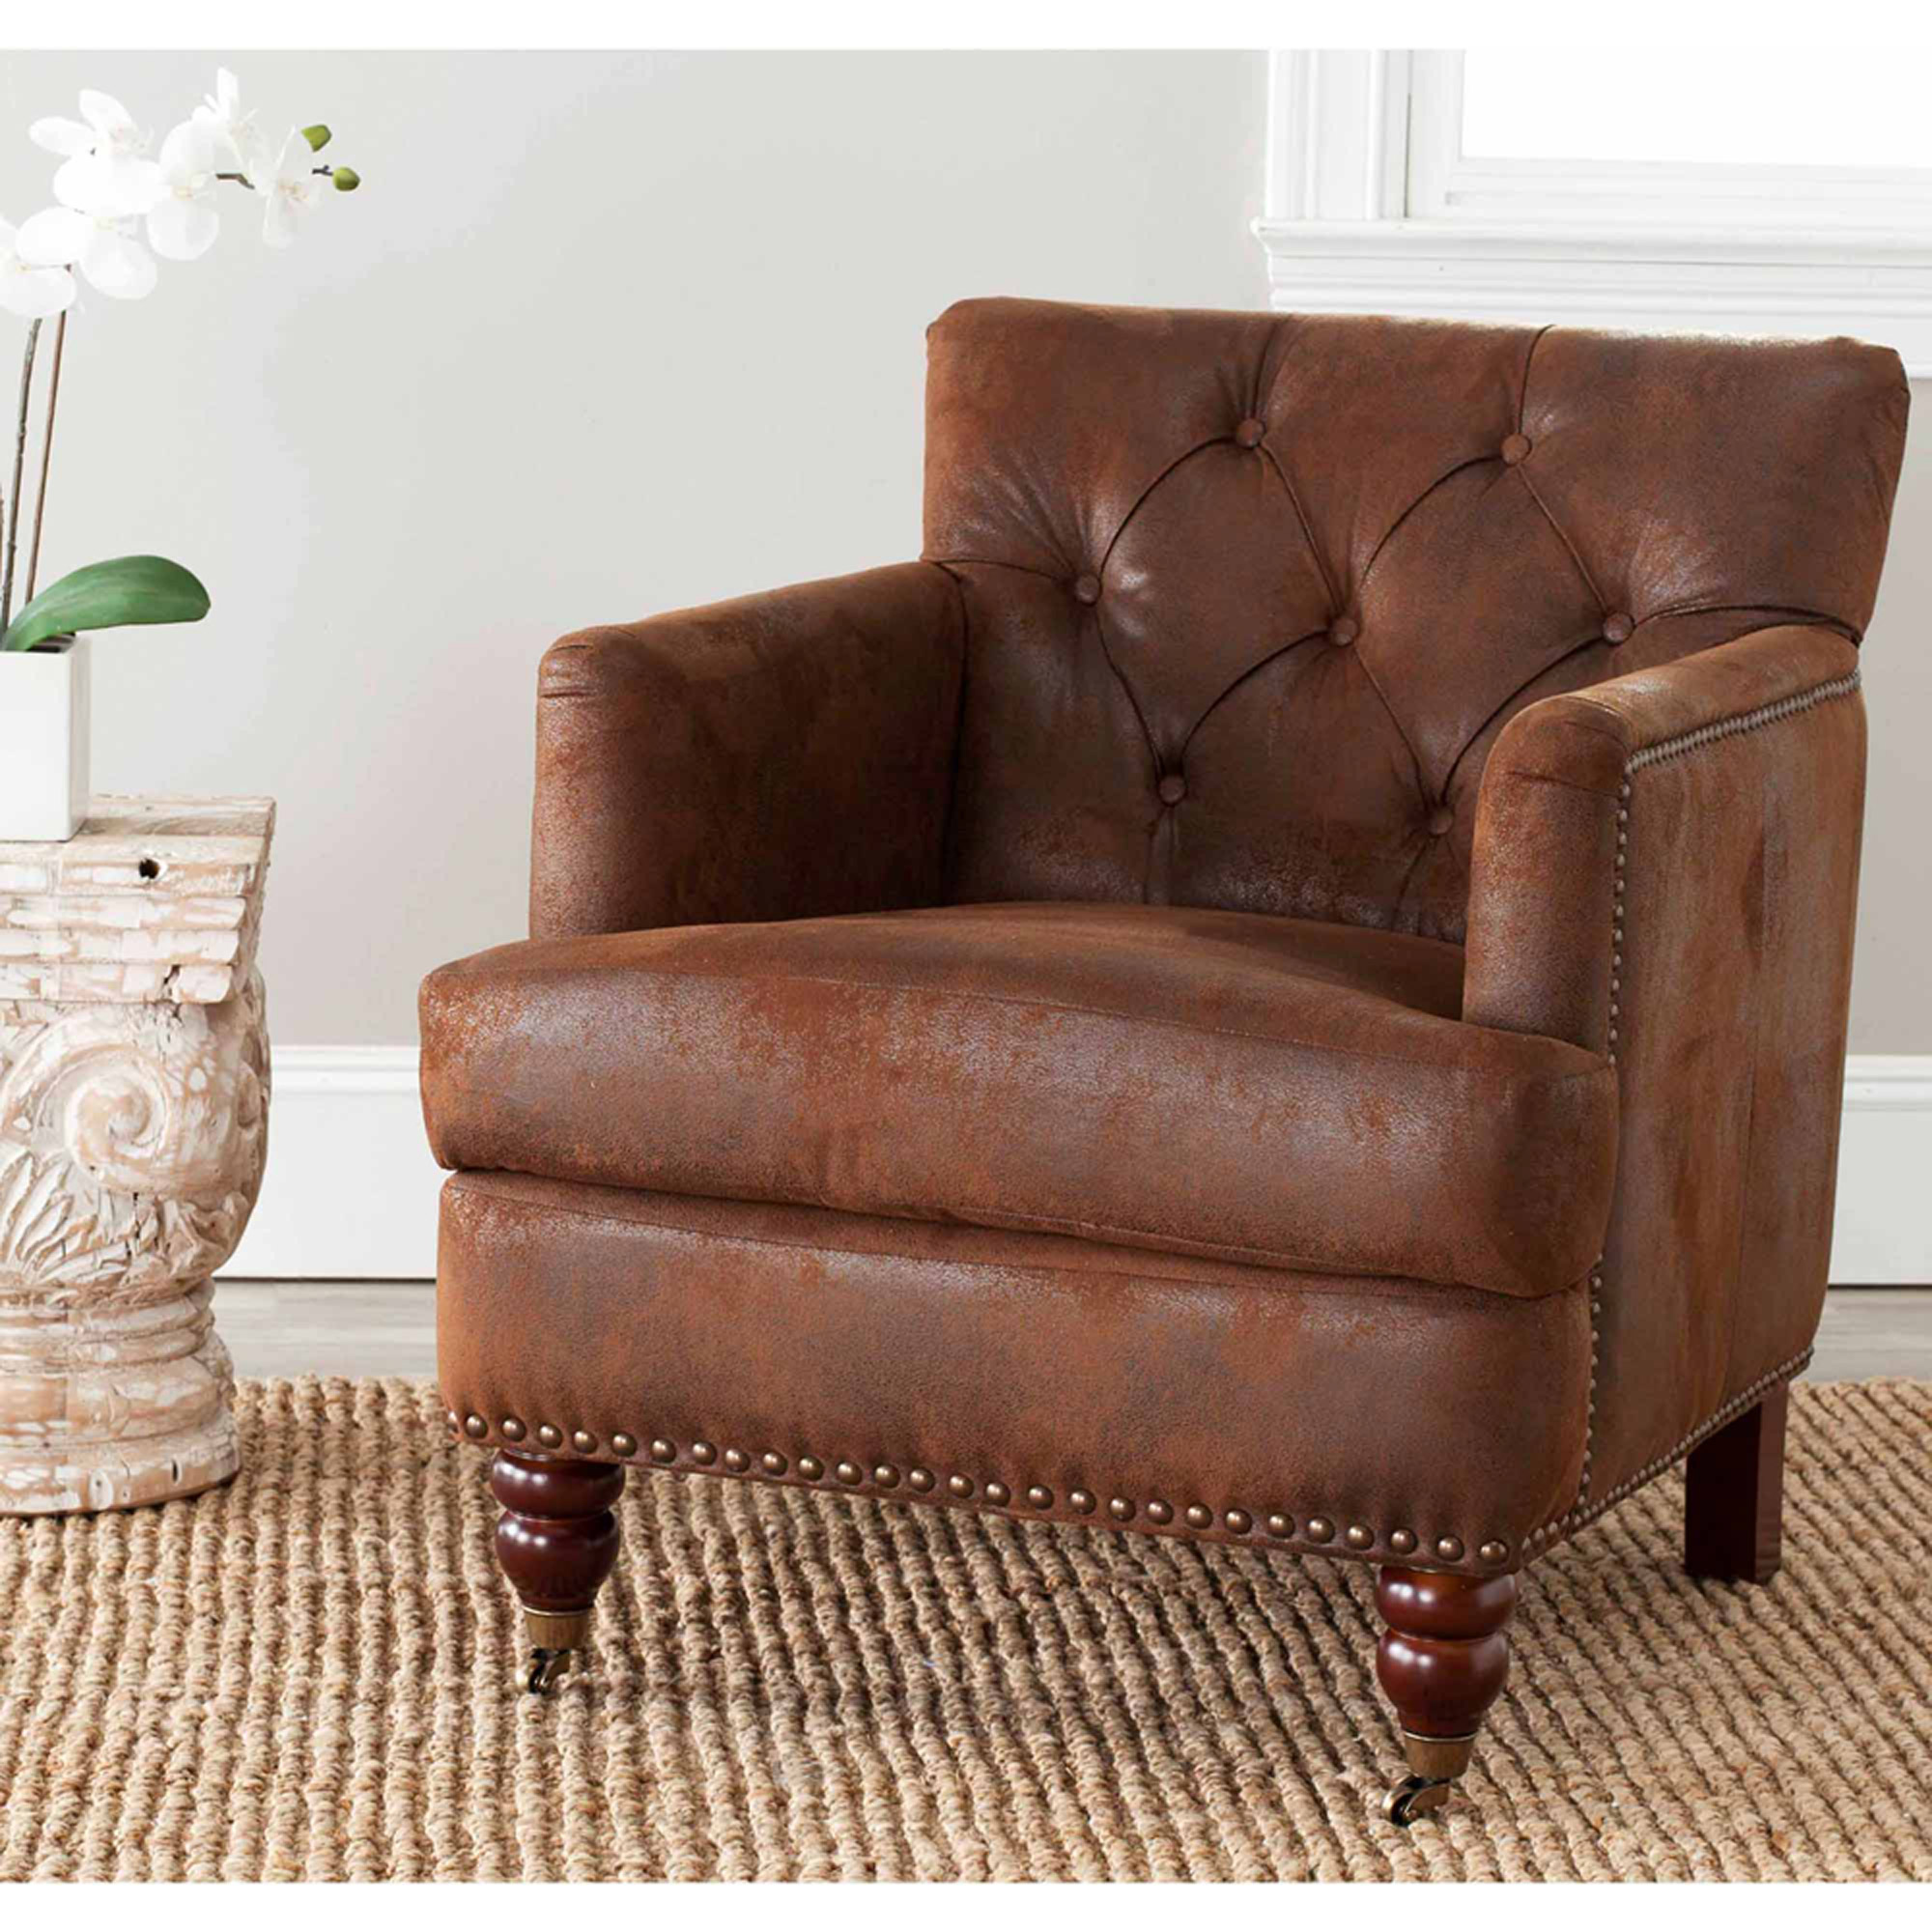 Safavieh Colin Tufted Club Chair by Safavieh